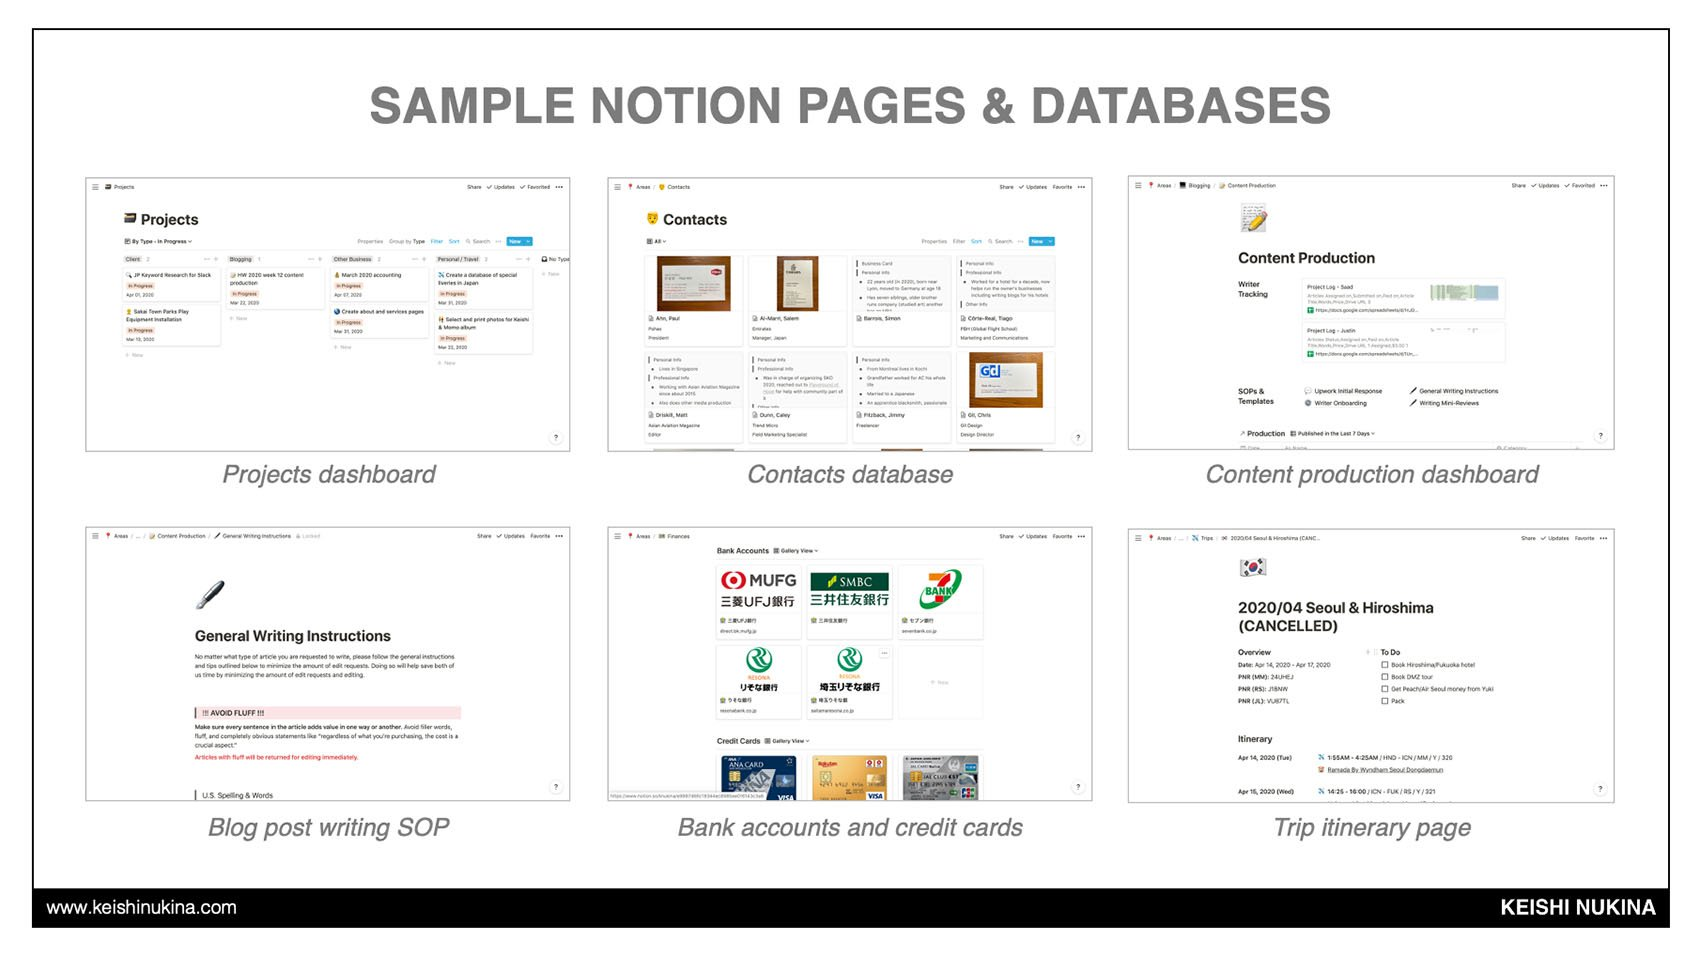 Sample Notion Pages